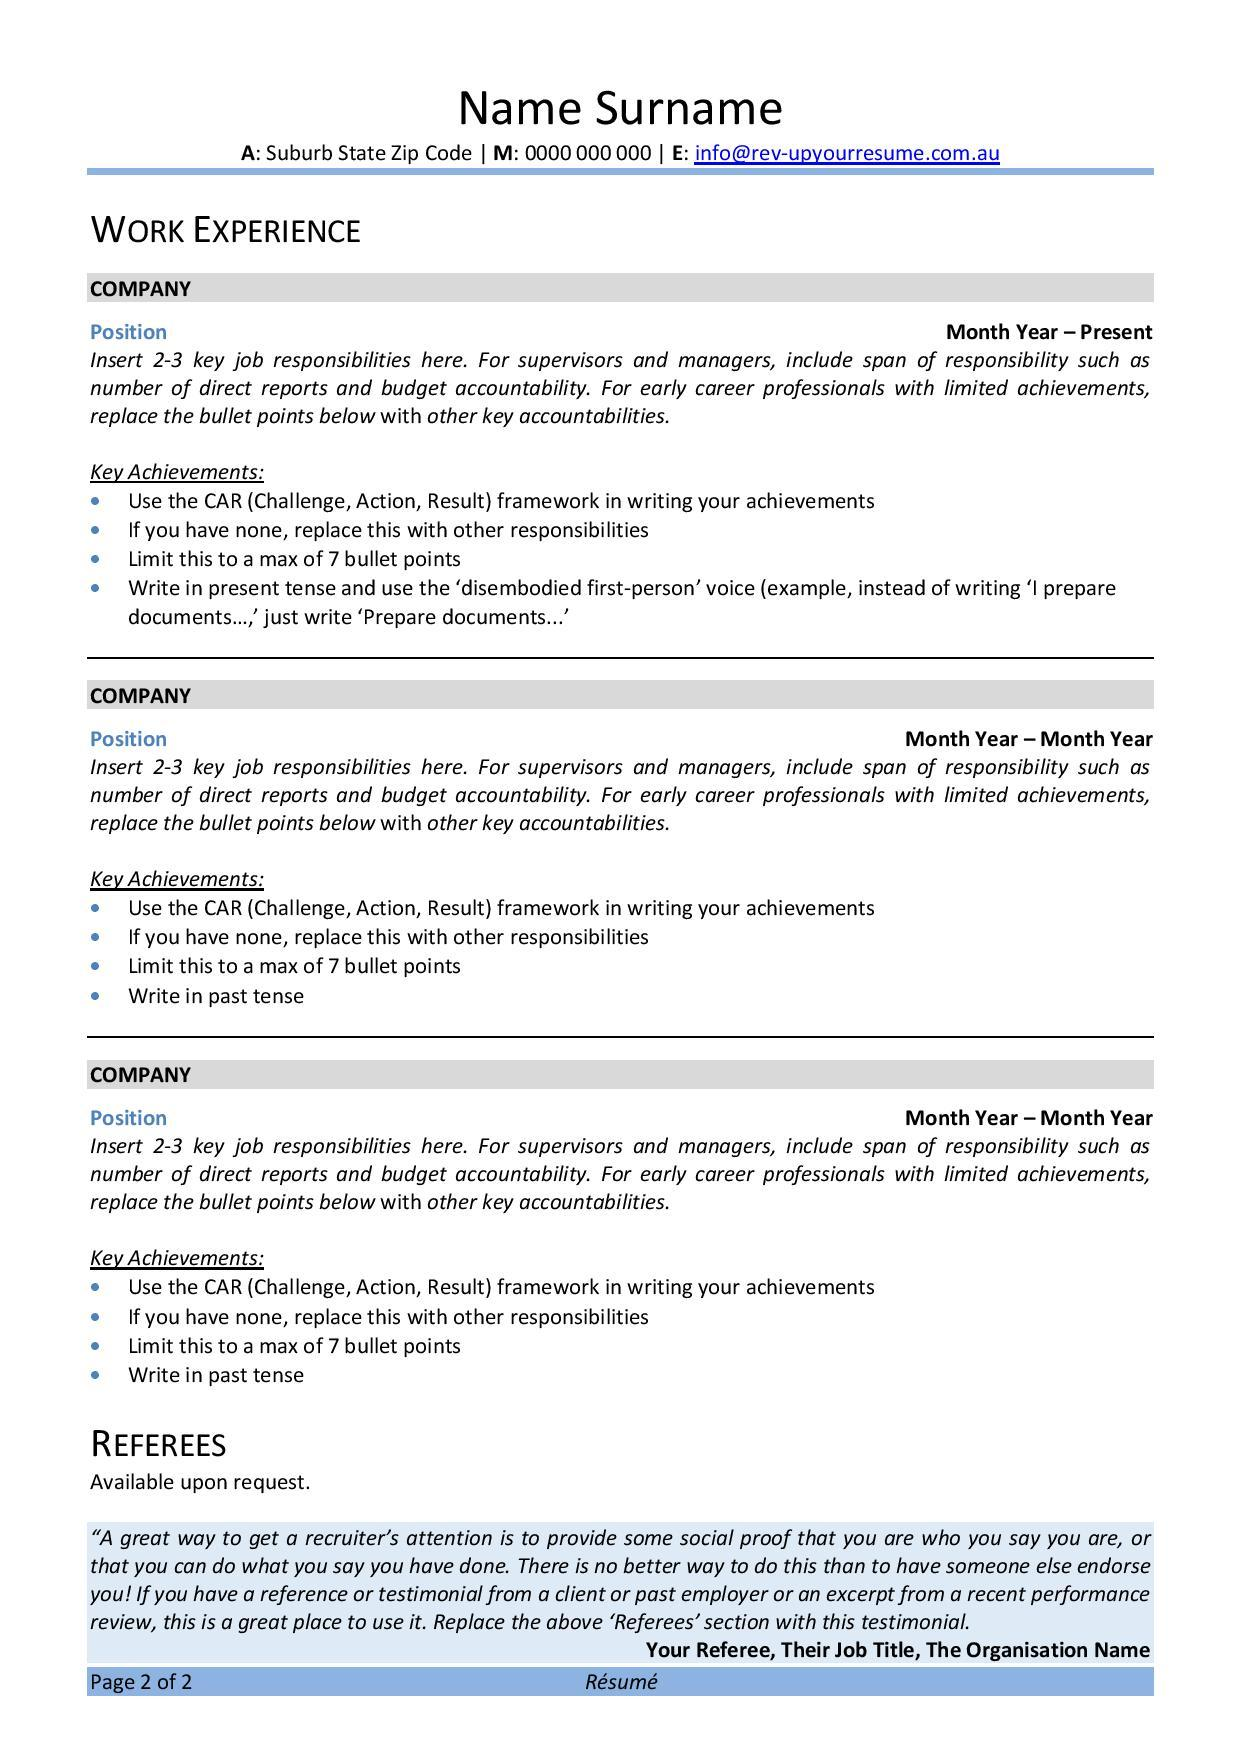 free australian resume template rev up your melbourne covid behavioral health technician Resume Melbourne Resume Template